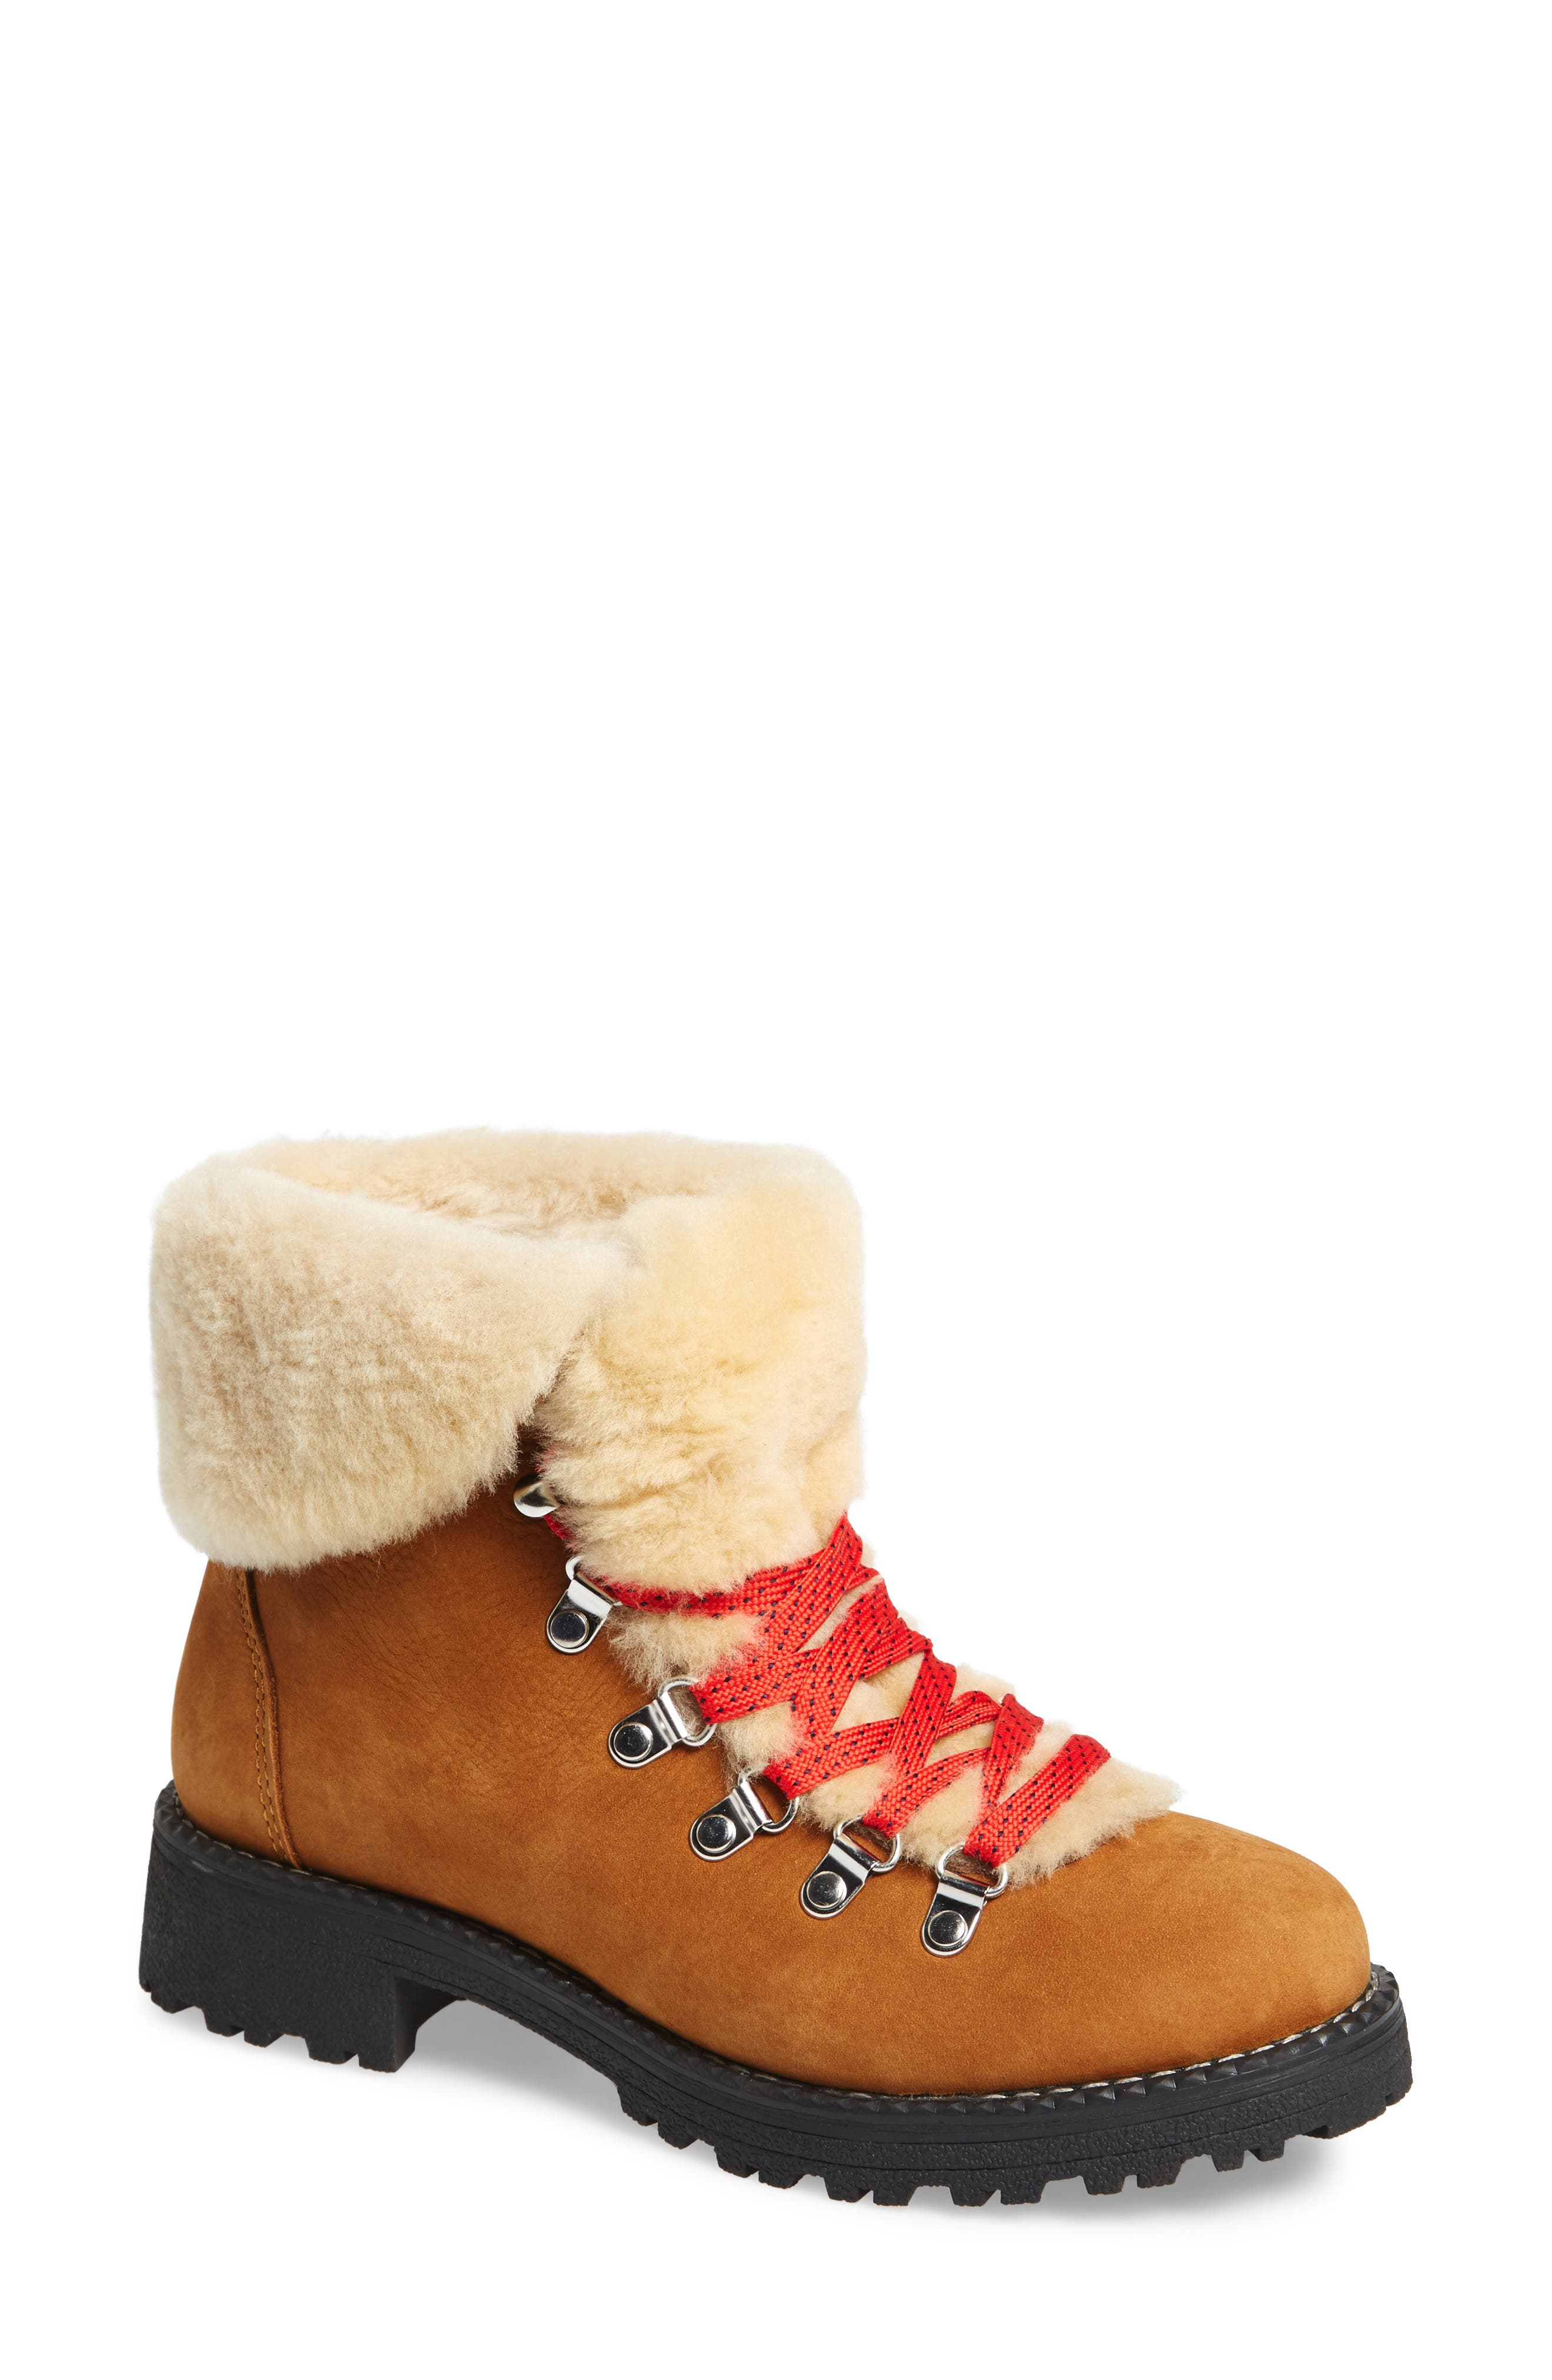 J.CREW, Nordic Genuine Shearling Cuff Winter Boot, Main thumbnail 1, color, GLAZED PECAN LEATHER